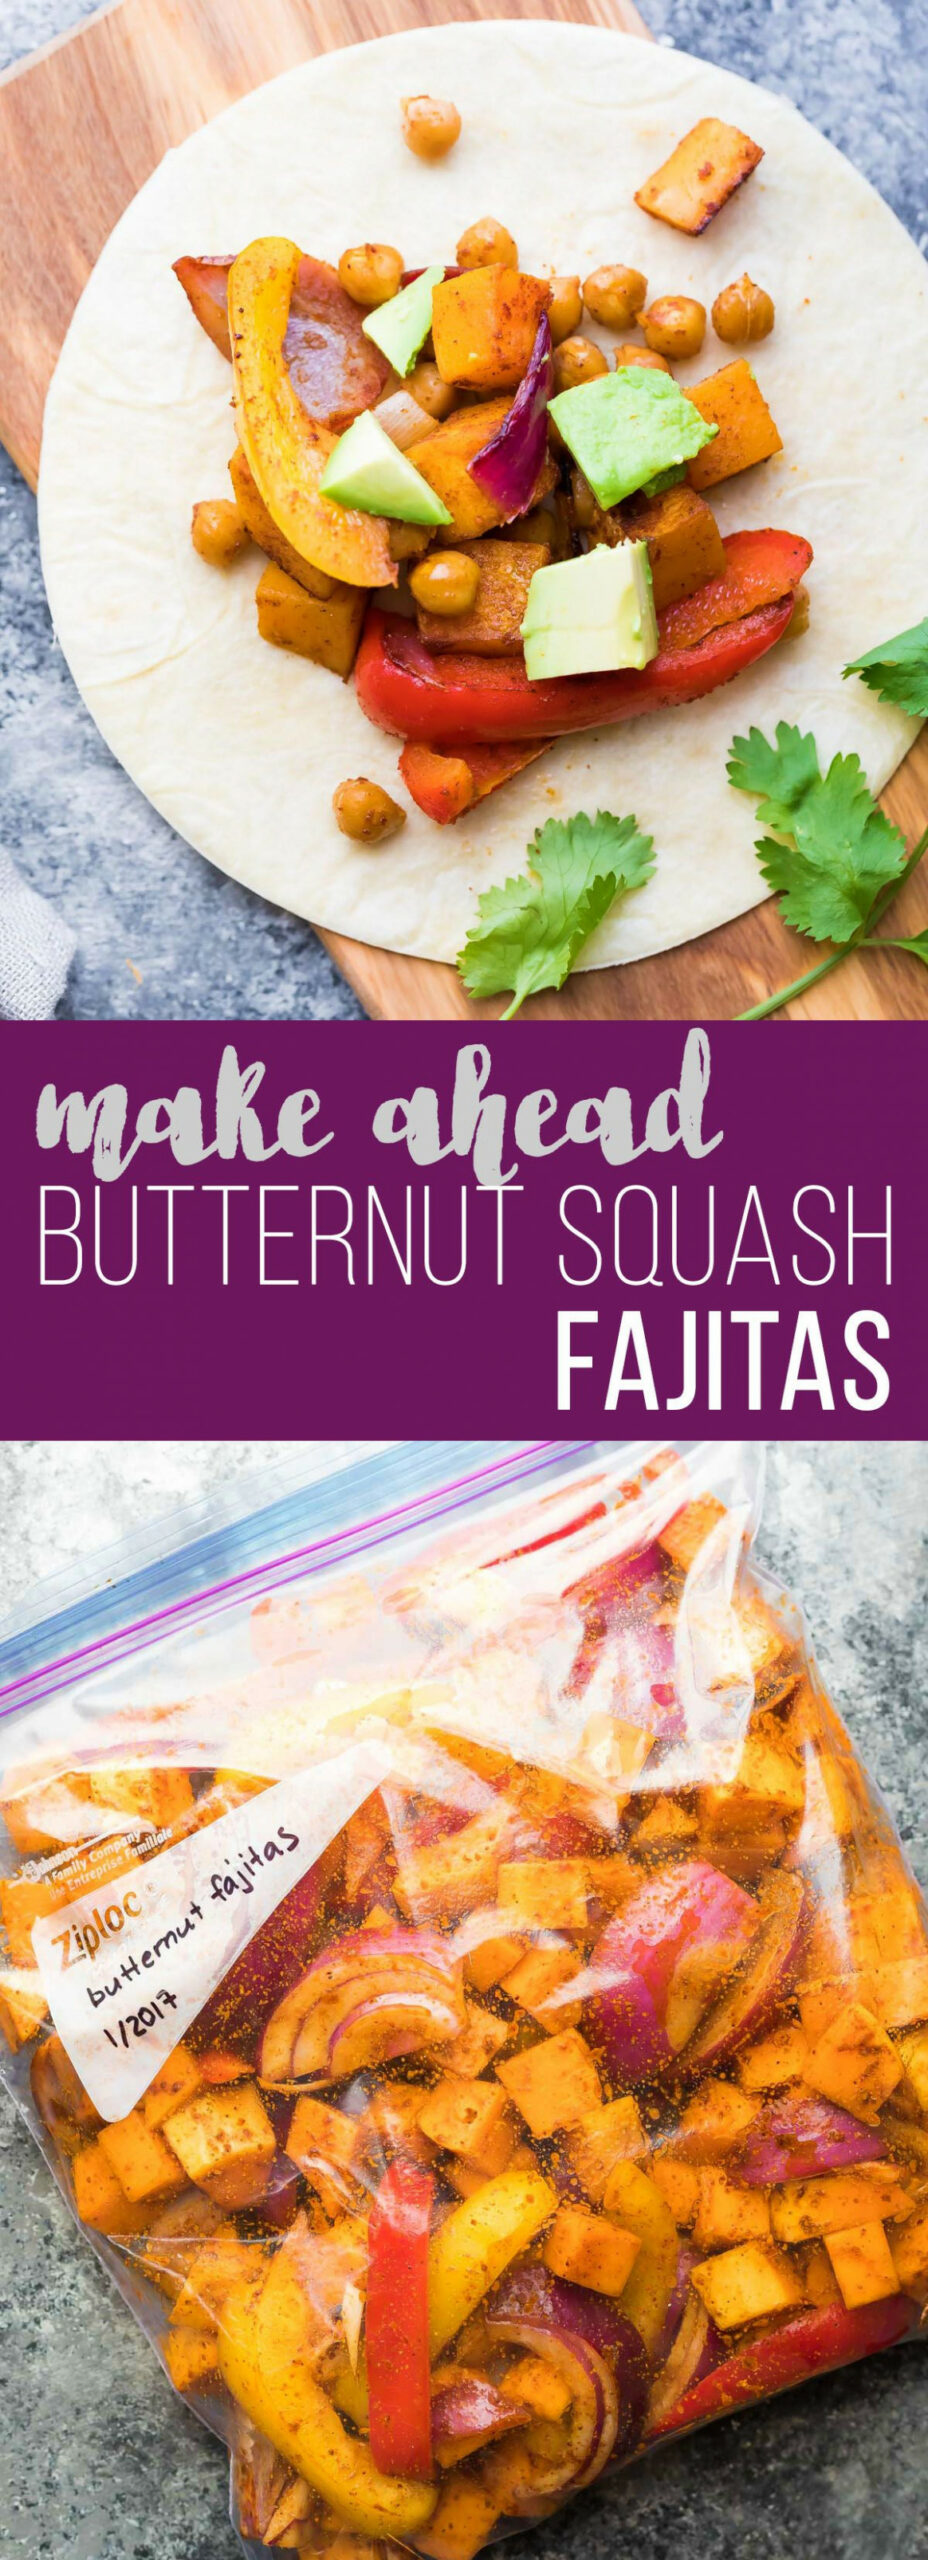 Make Ahead Chickpea Butternut Squash Fajitas - make ahead dinner recipes for company